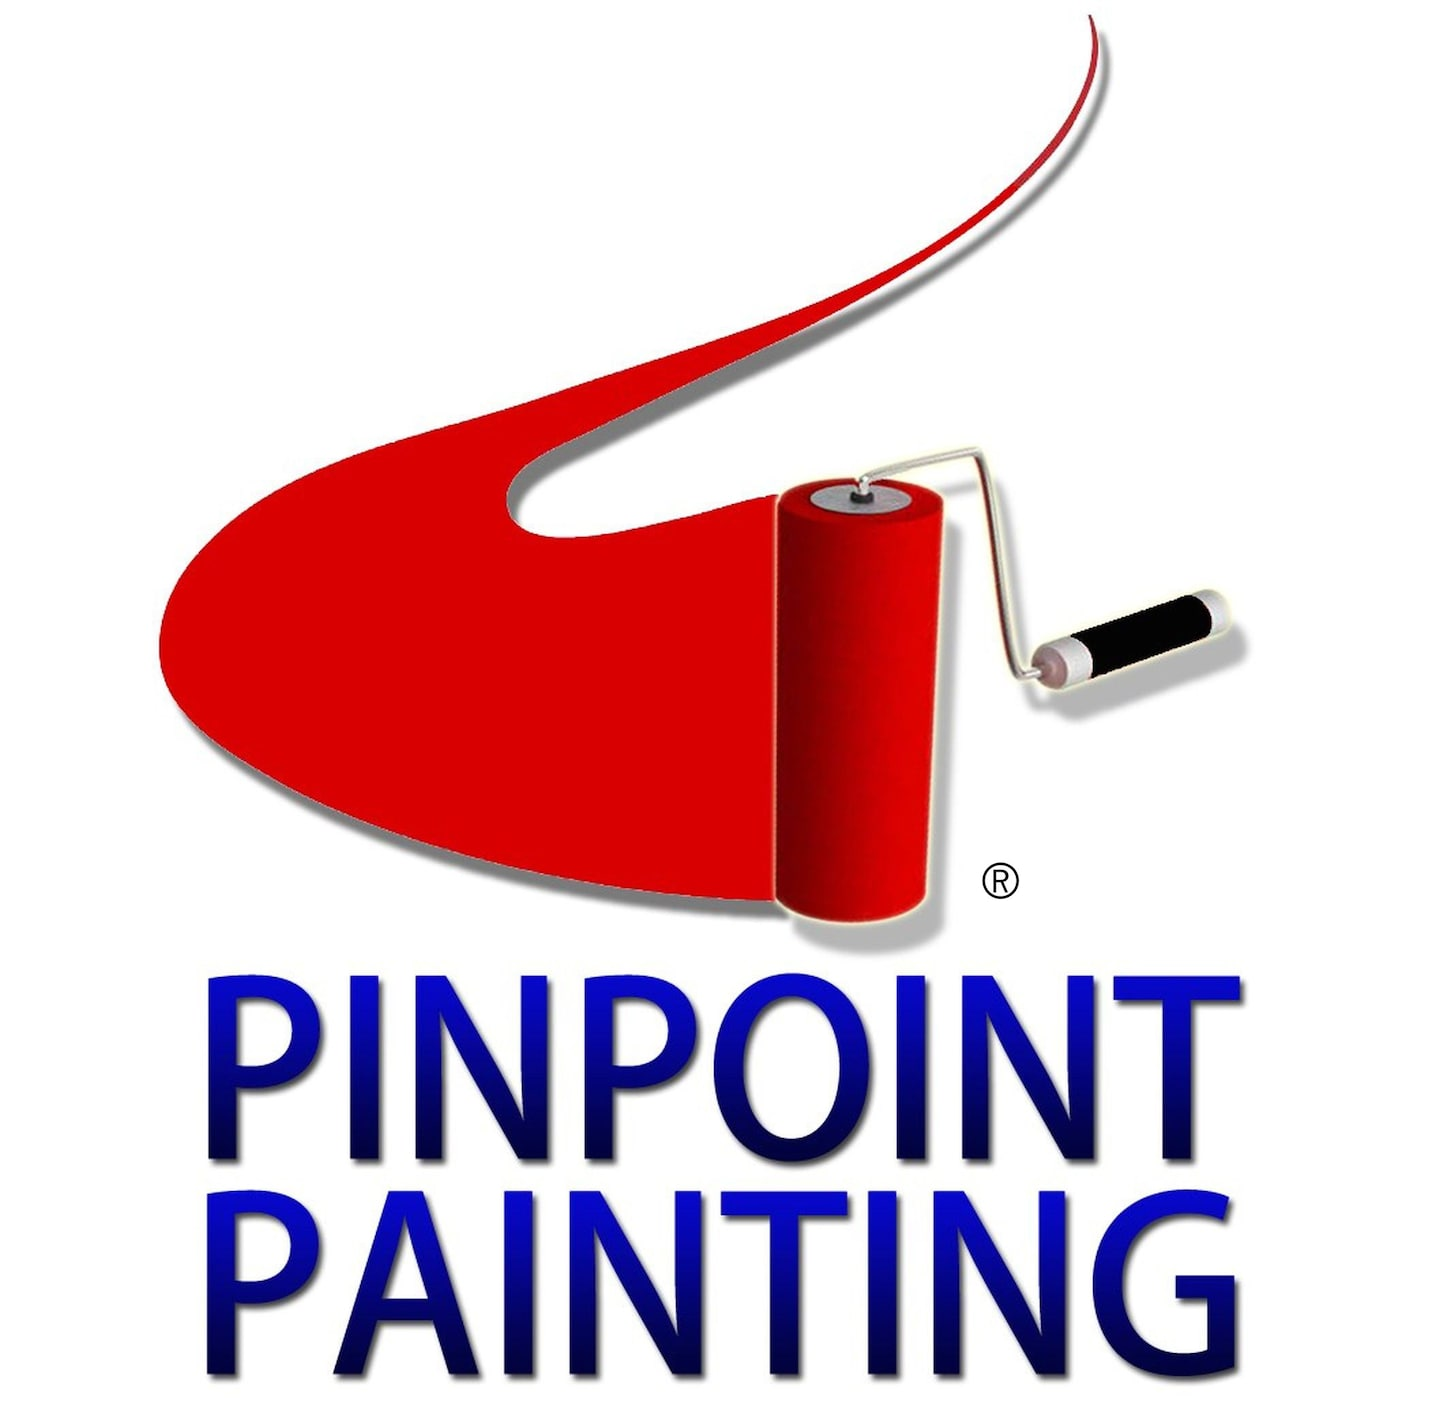 Pinpoint Painting LLC